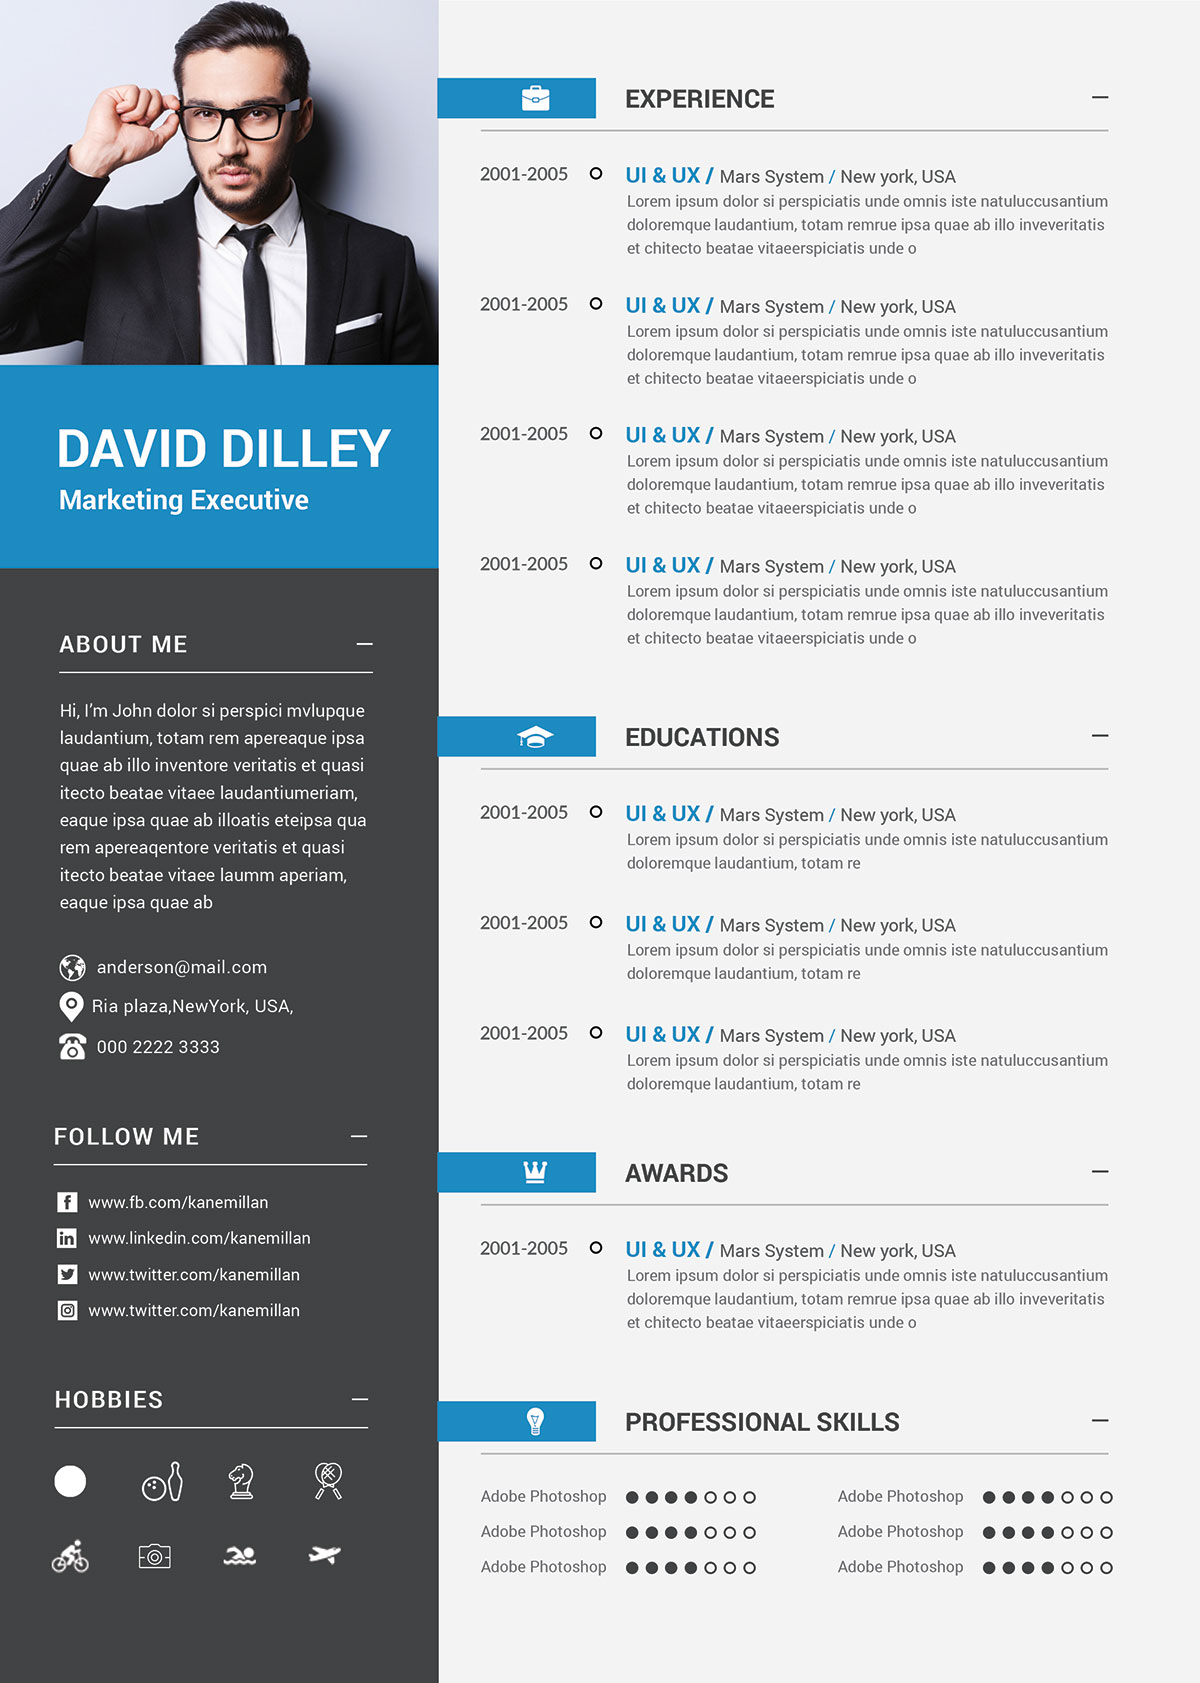 Free Professional CV Template Amp Cover Letter For Marketing Executives Good Resume